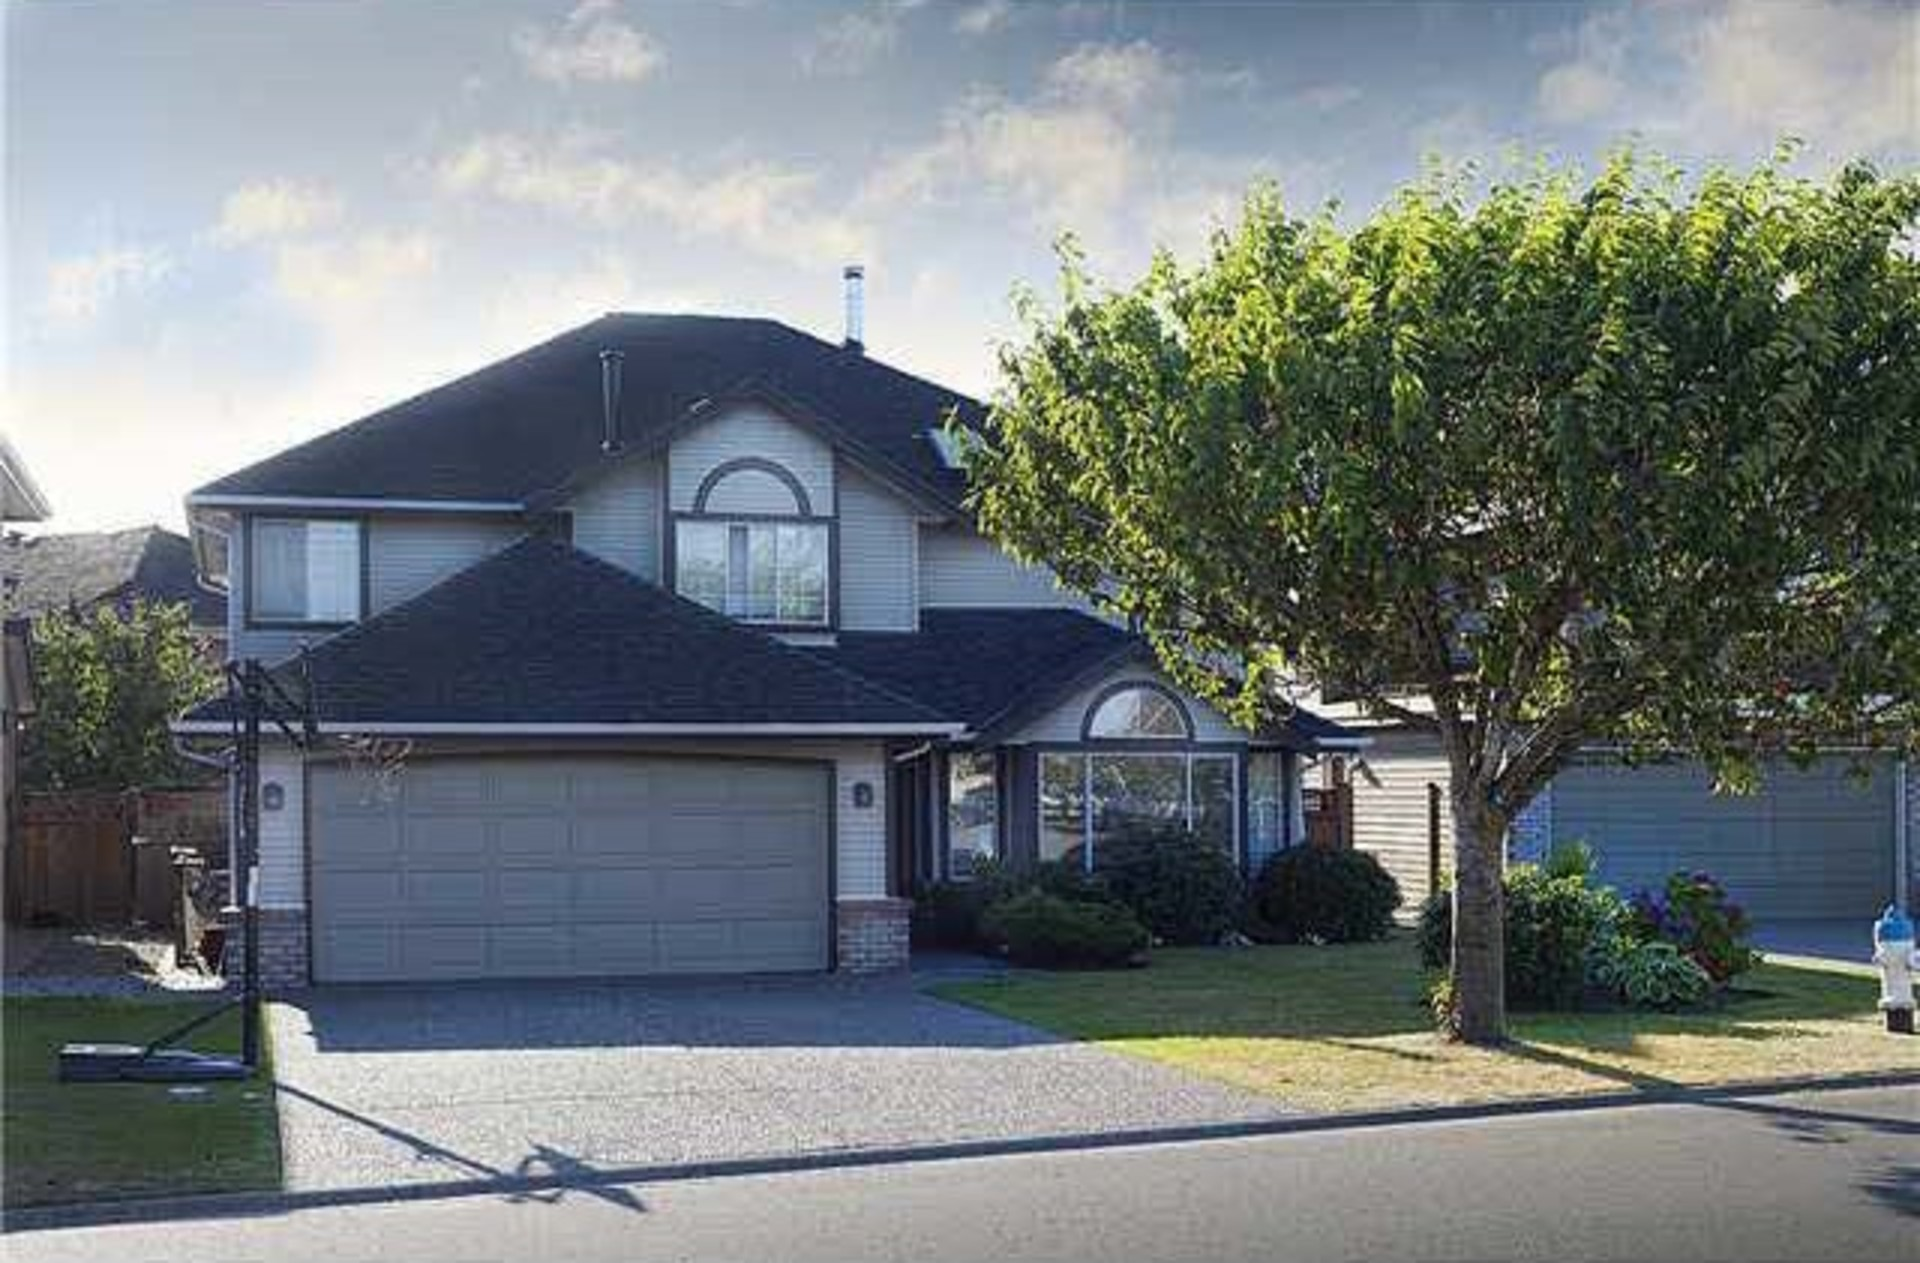 258915825 at 5047 Crescent Place, Holly, Ladner